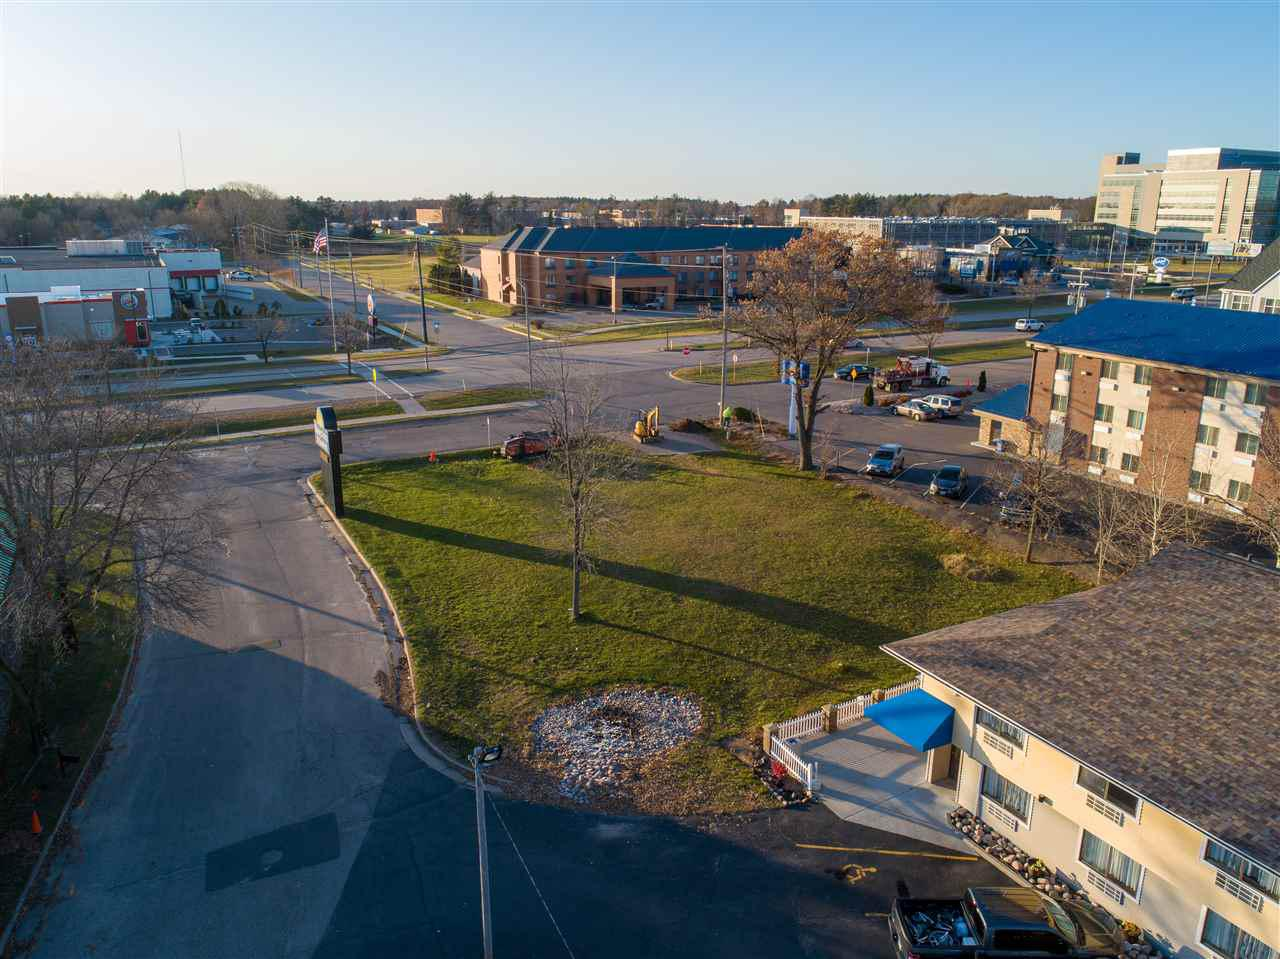 Fantastic commercial building opportunity! This 0.3 acre lot has great exposure on Division St on the north end of Stevens Point. High daily traffic count. Close to the University, restauraunts, hotels, and many other businesses and employers.  Property is zoned B4 Commercial. Don't miss out on this great location for your future business!